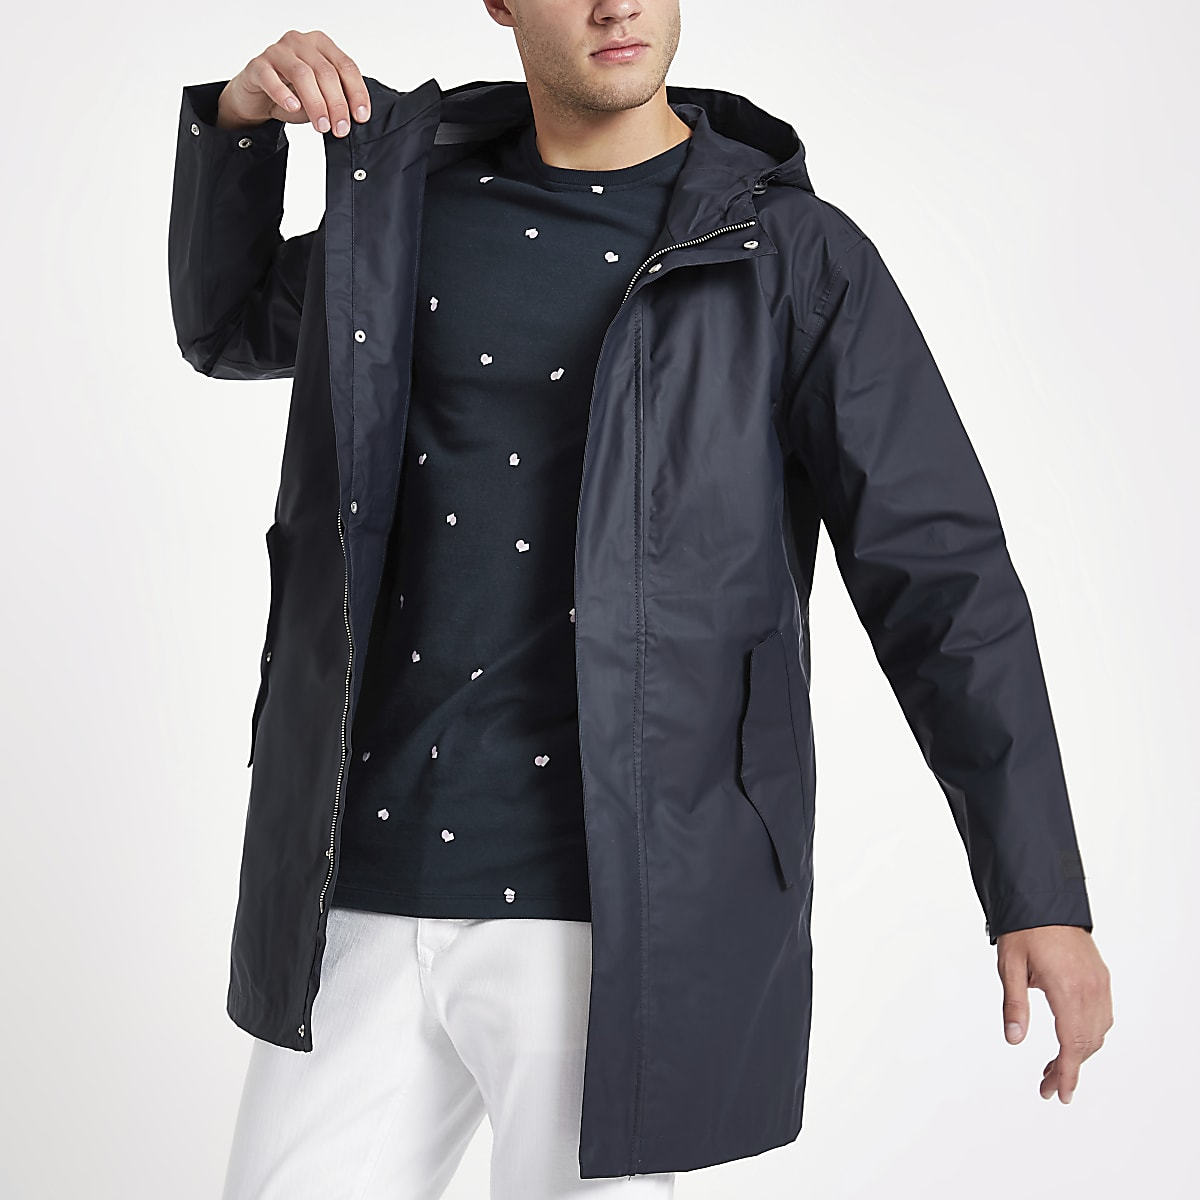 Minimum navy hooded jacket